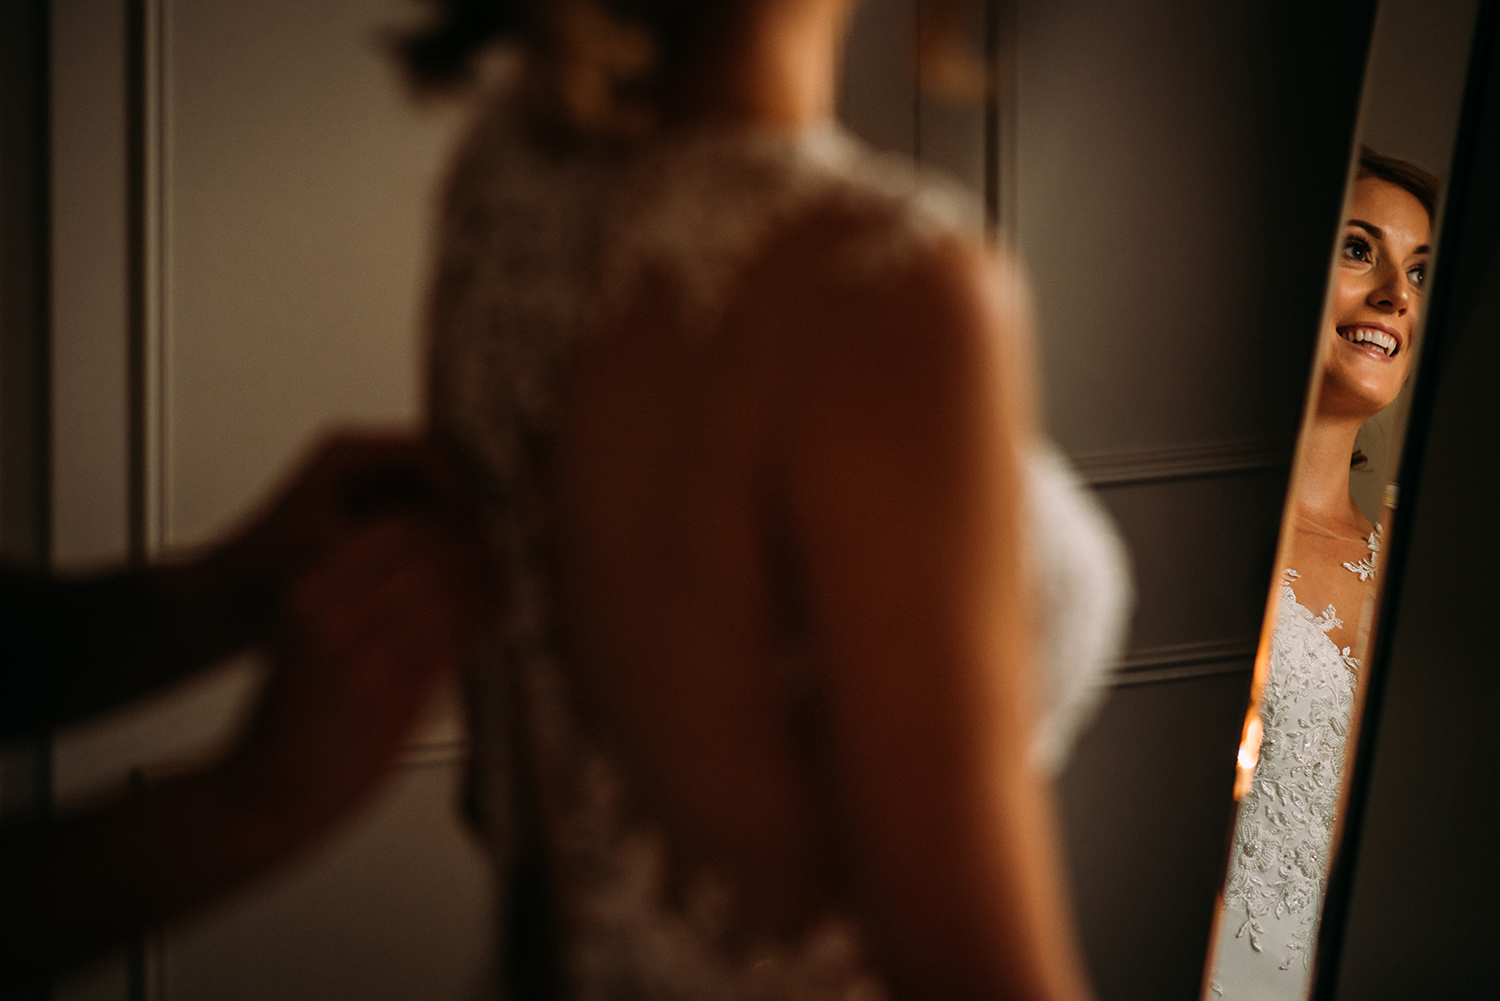 bride having dress fastened, slight reflection of her smile in the mirror